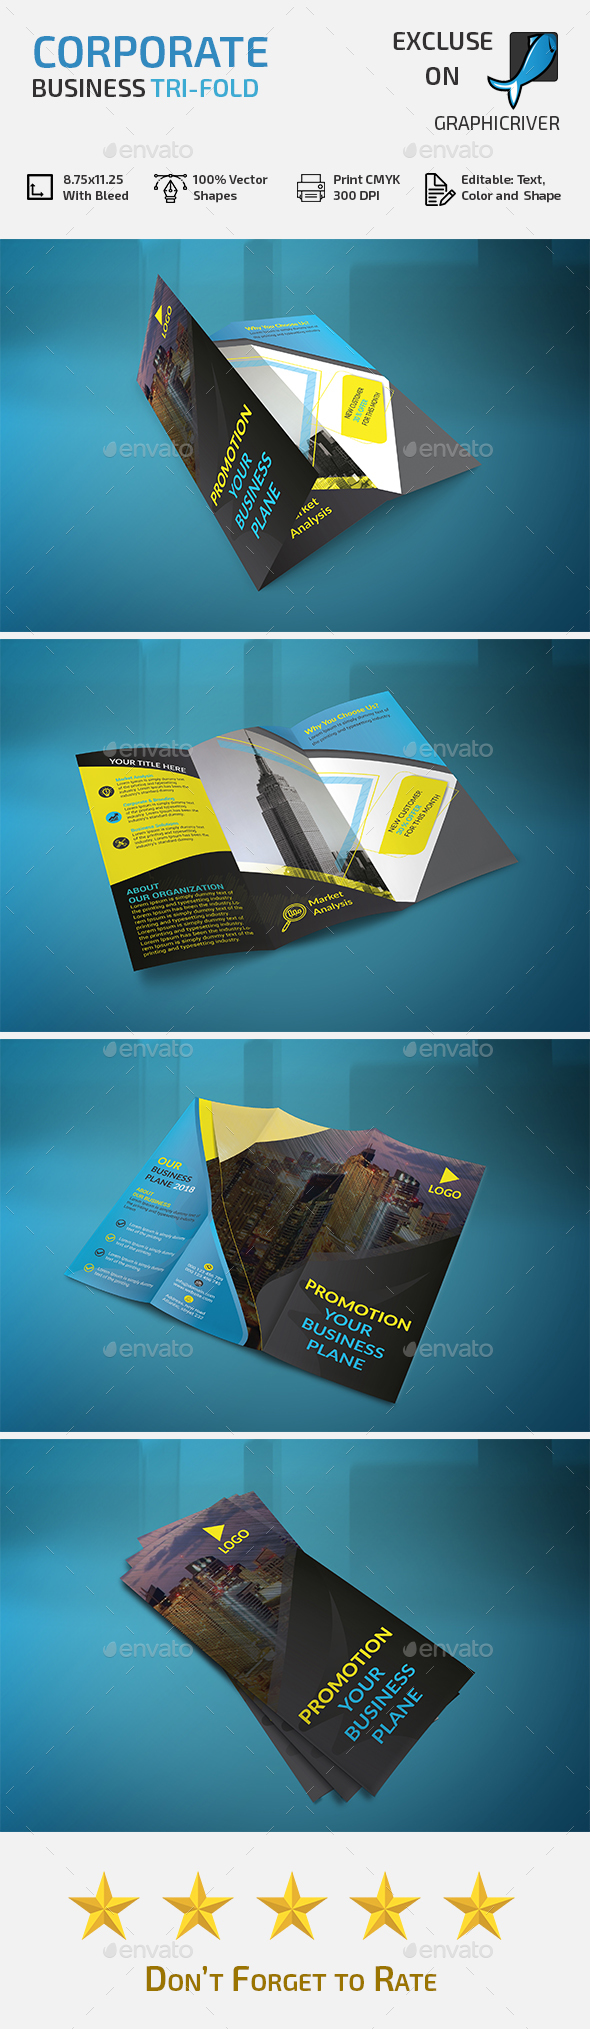 Corporate Trifold Business Brochure - Brochures Print Templates